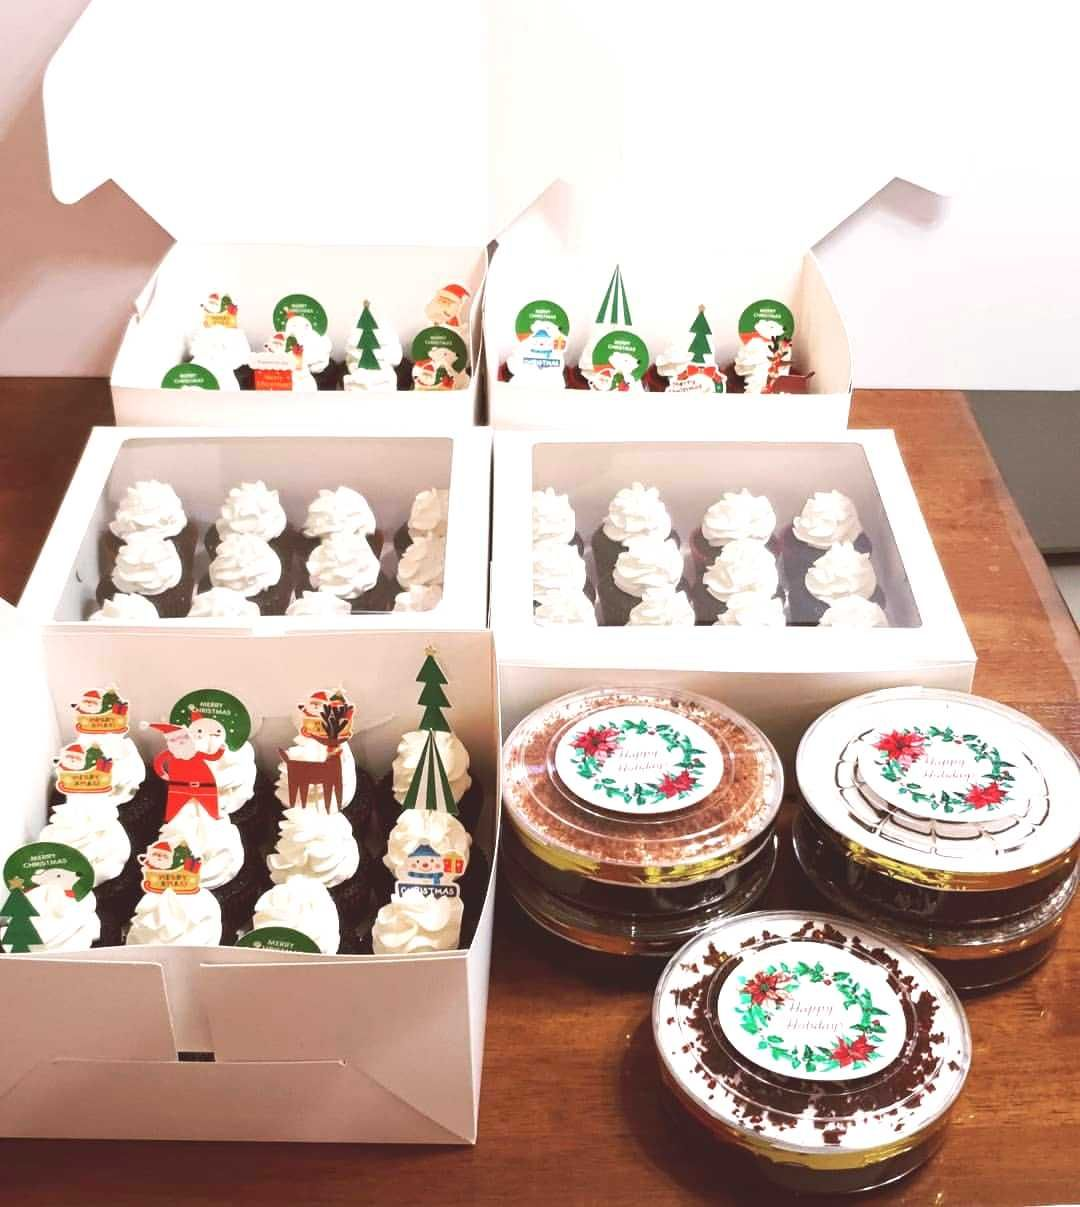 #christmasfeels #cakegiving #cupcakes #indoor #baked #these #all #doz #of #8 #cakegiving #christmasfeels ... baked all these 8 doz of cupcakesYou can find Cake Desserts and more on our website.#cakegiving #christmasfeels ... baked all ...